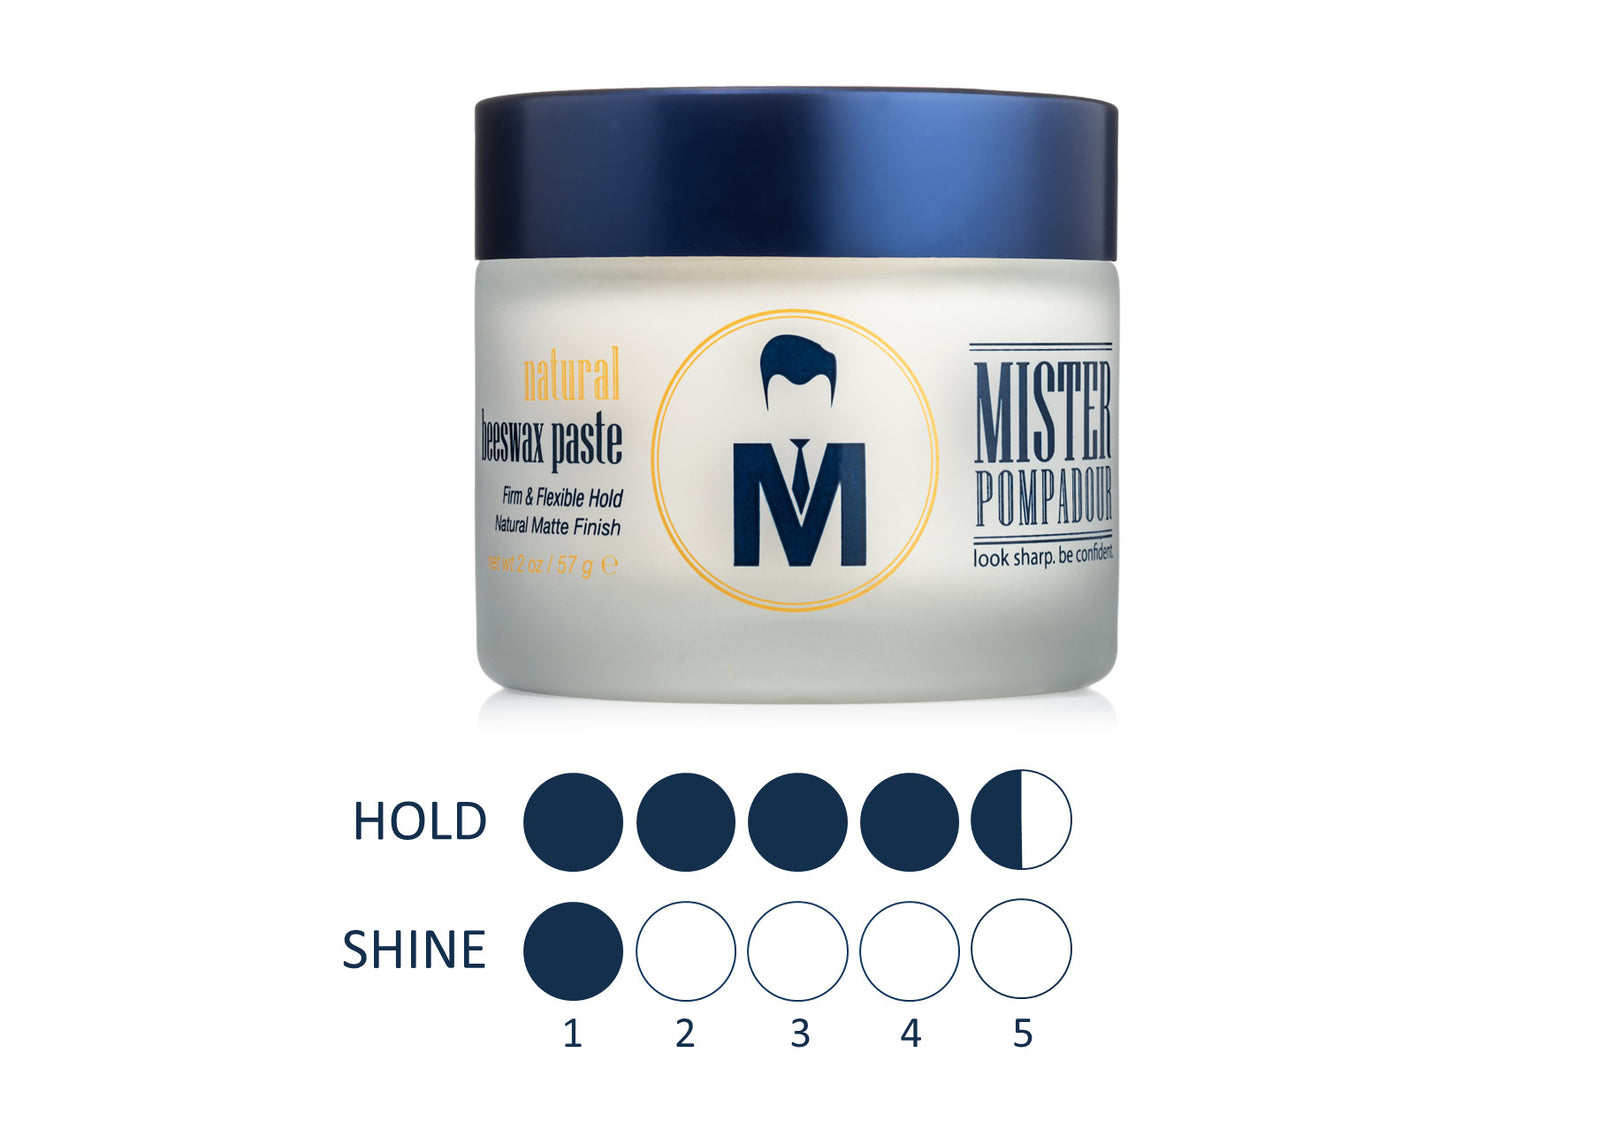 Mister Pompadour Men S Grooming Products Look Sharp Be